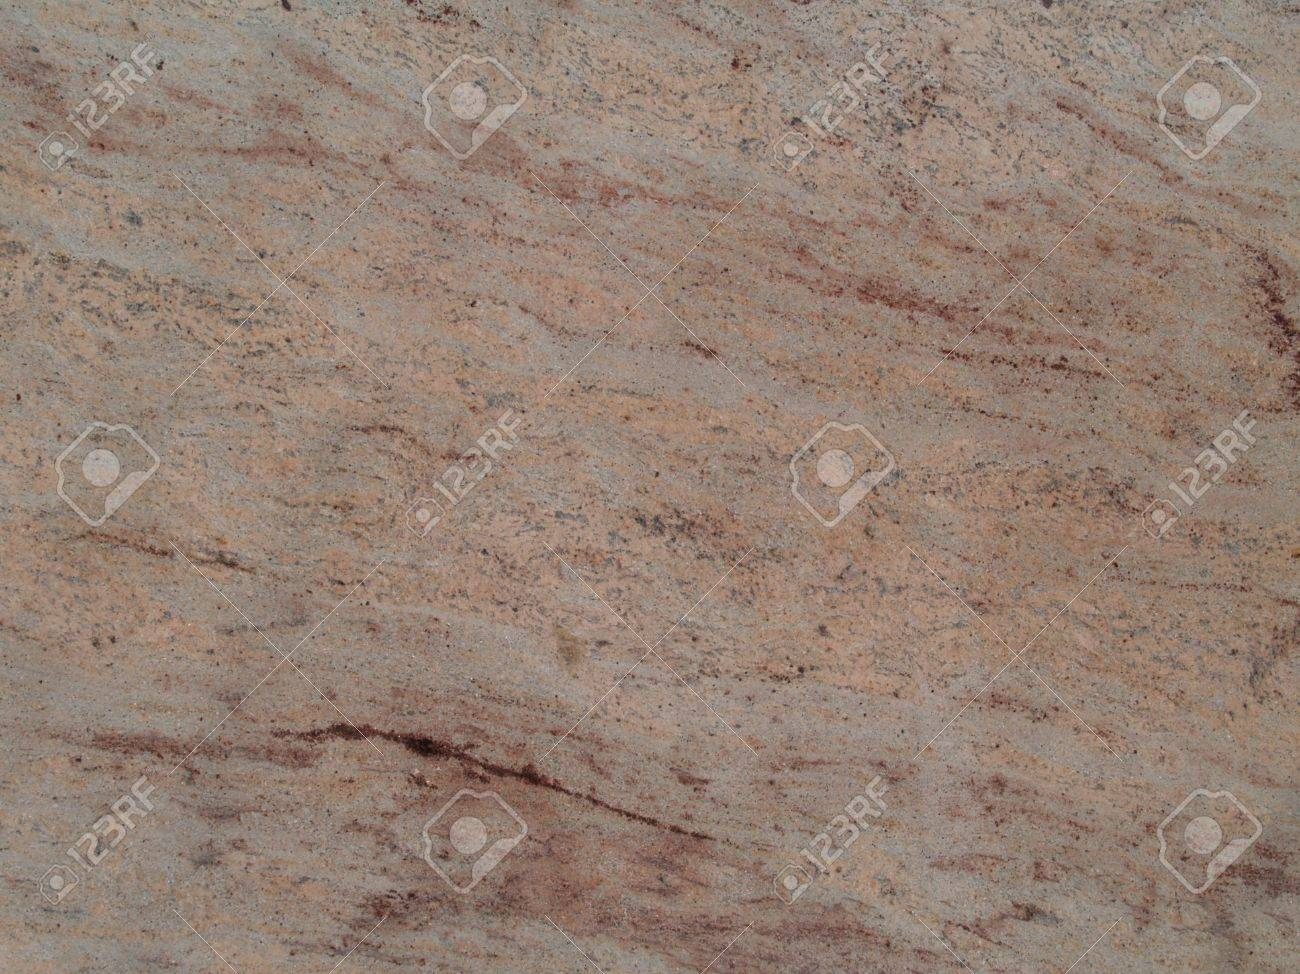 Pink or Salmon and Gray marbled grunge texture. Stock Photo - 5206028